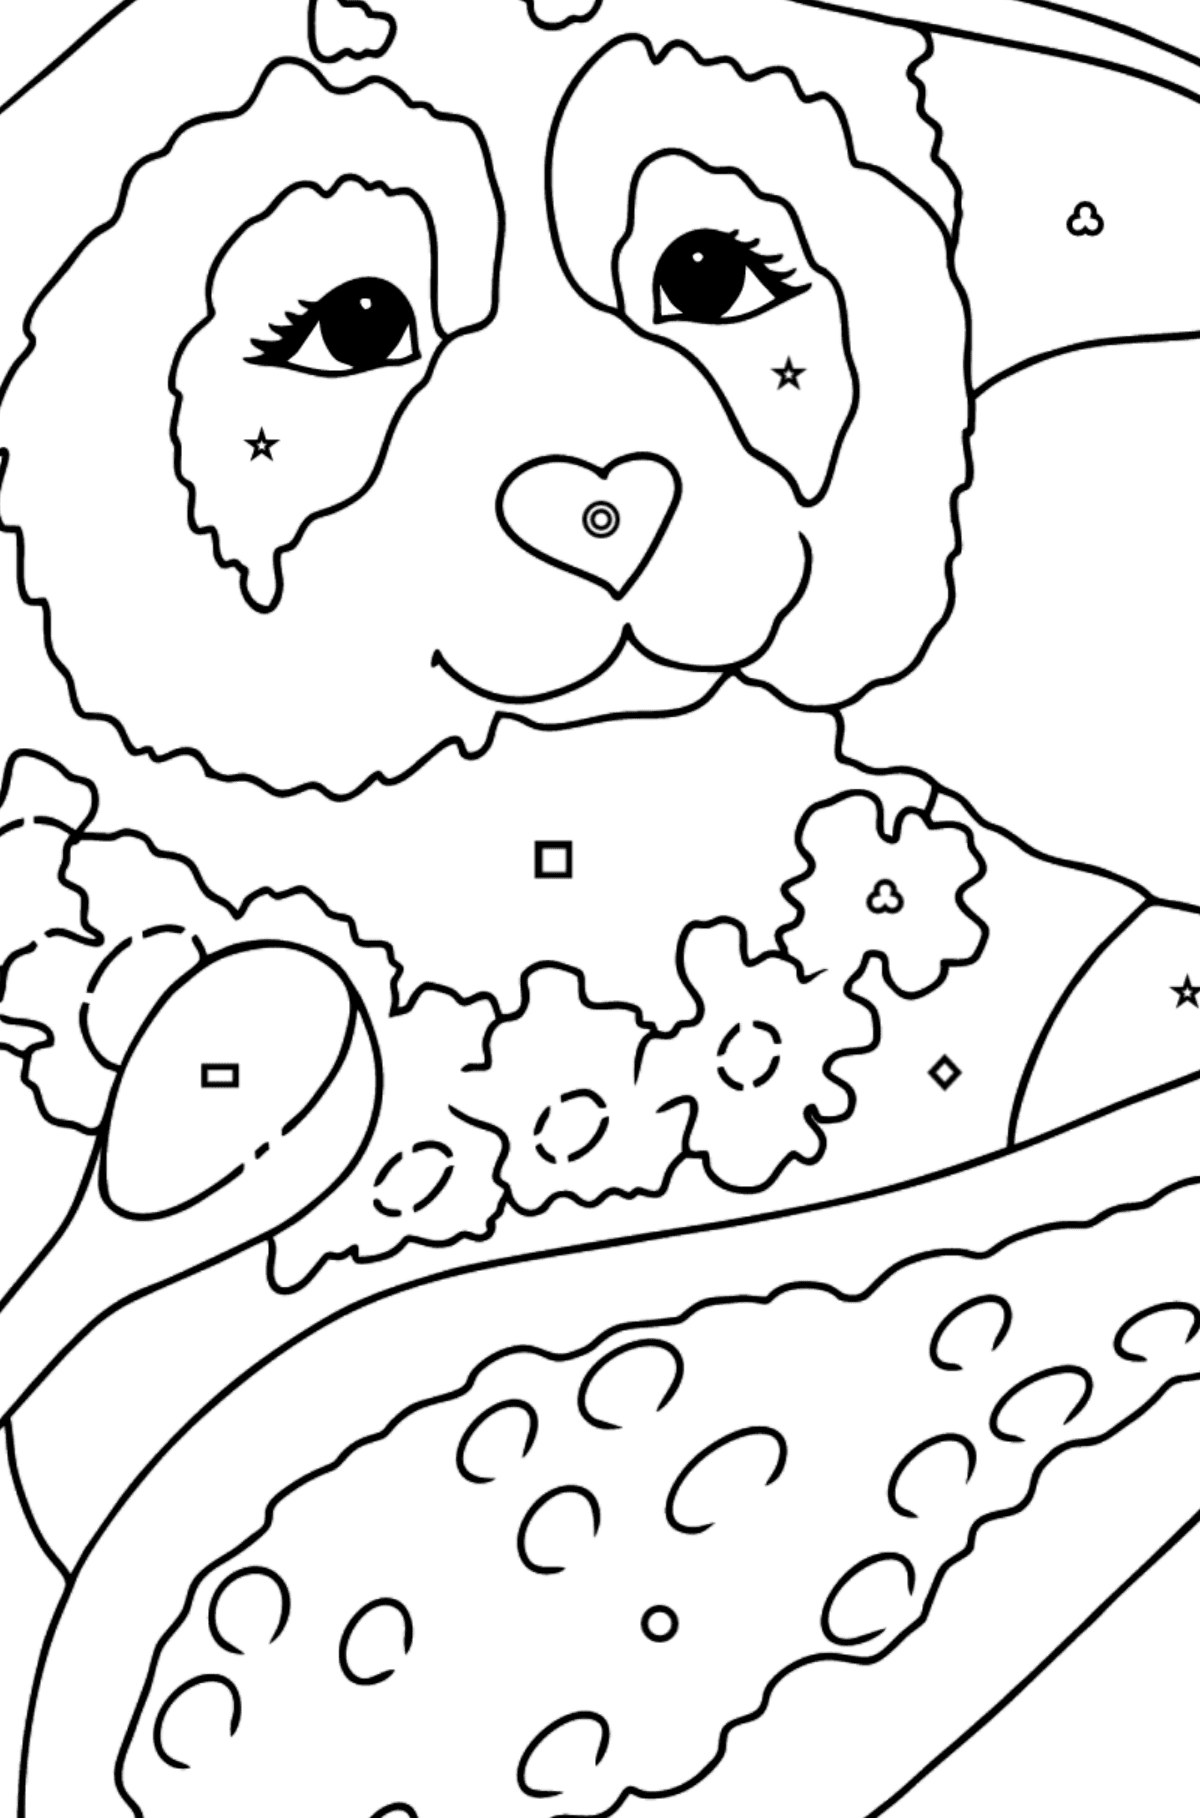 Coloring Page - A Panda is Having Lunch - Coloring by Geometric Shapes for Kids